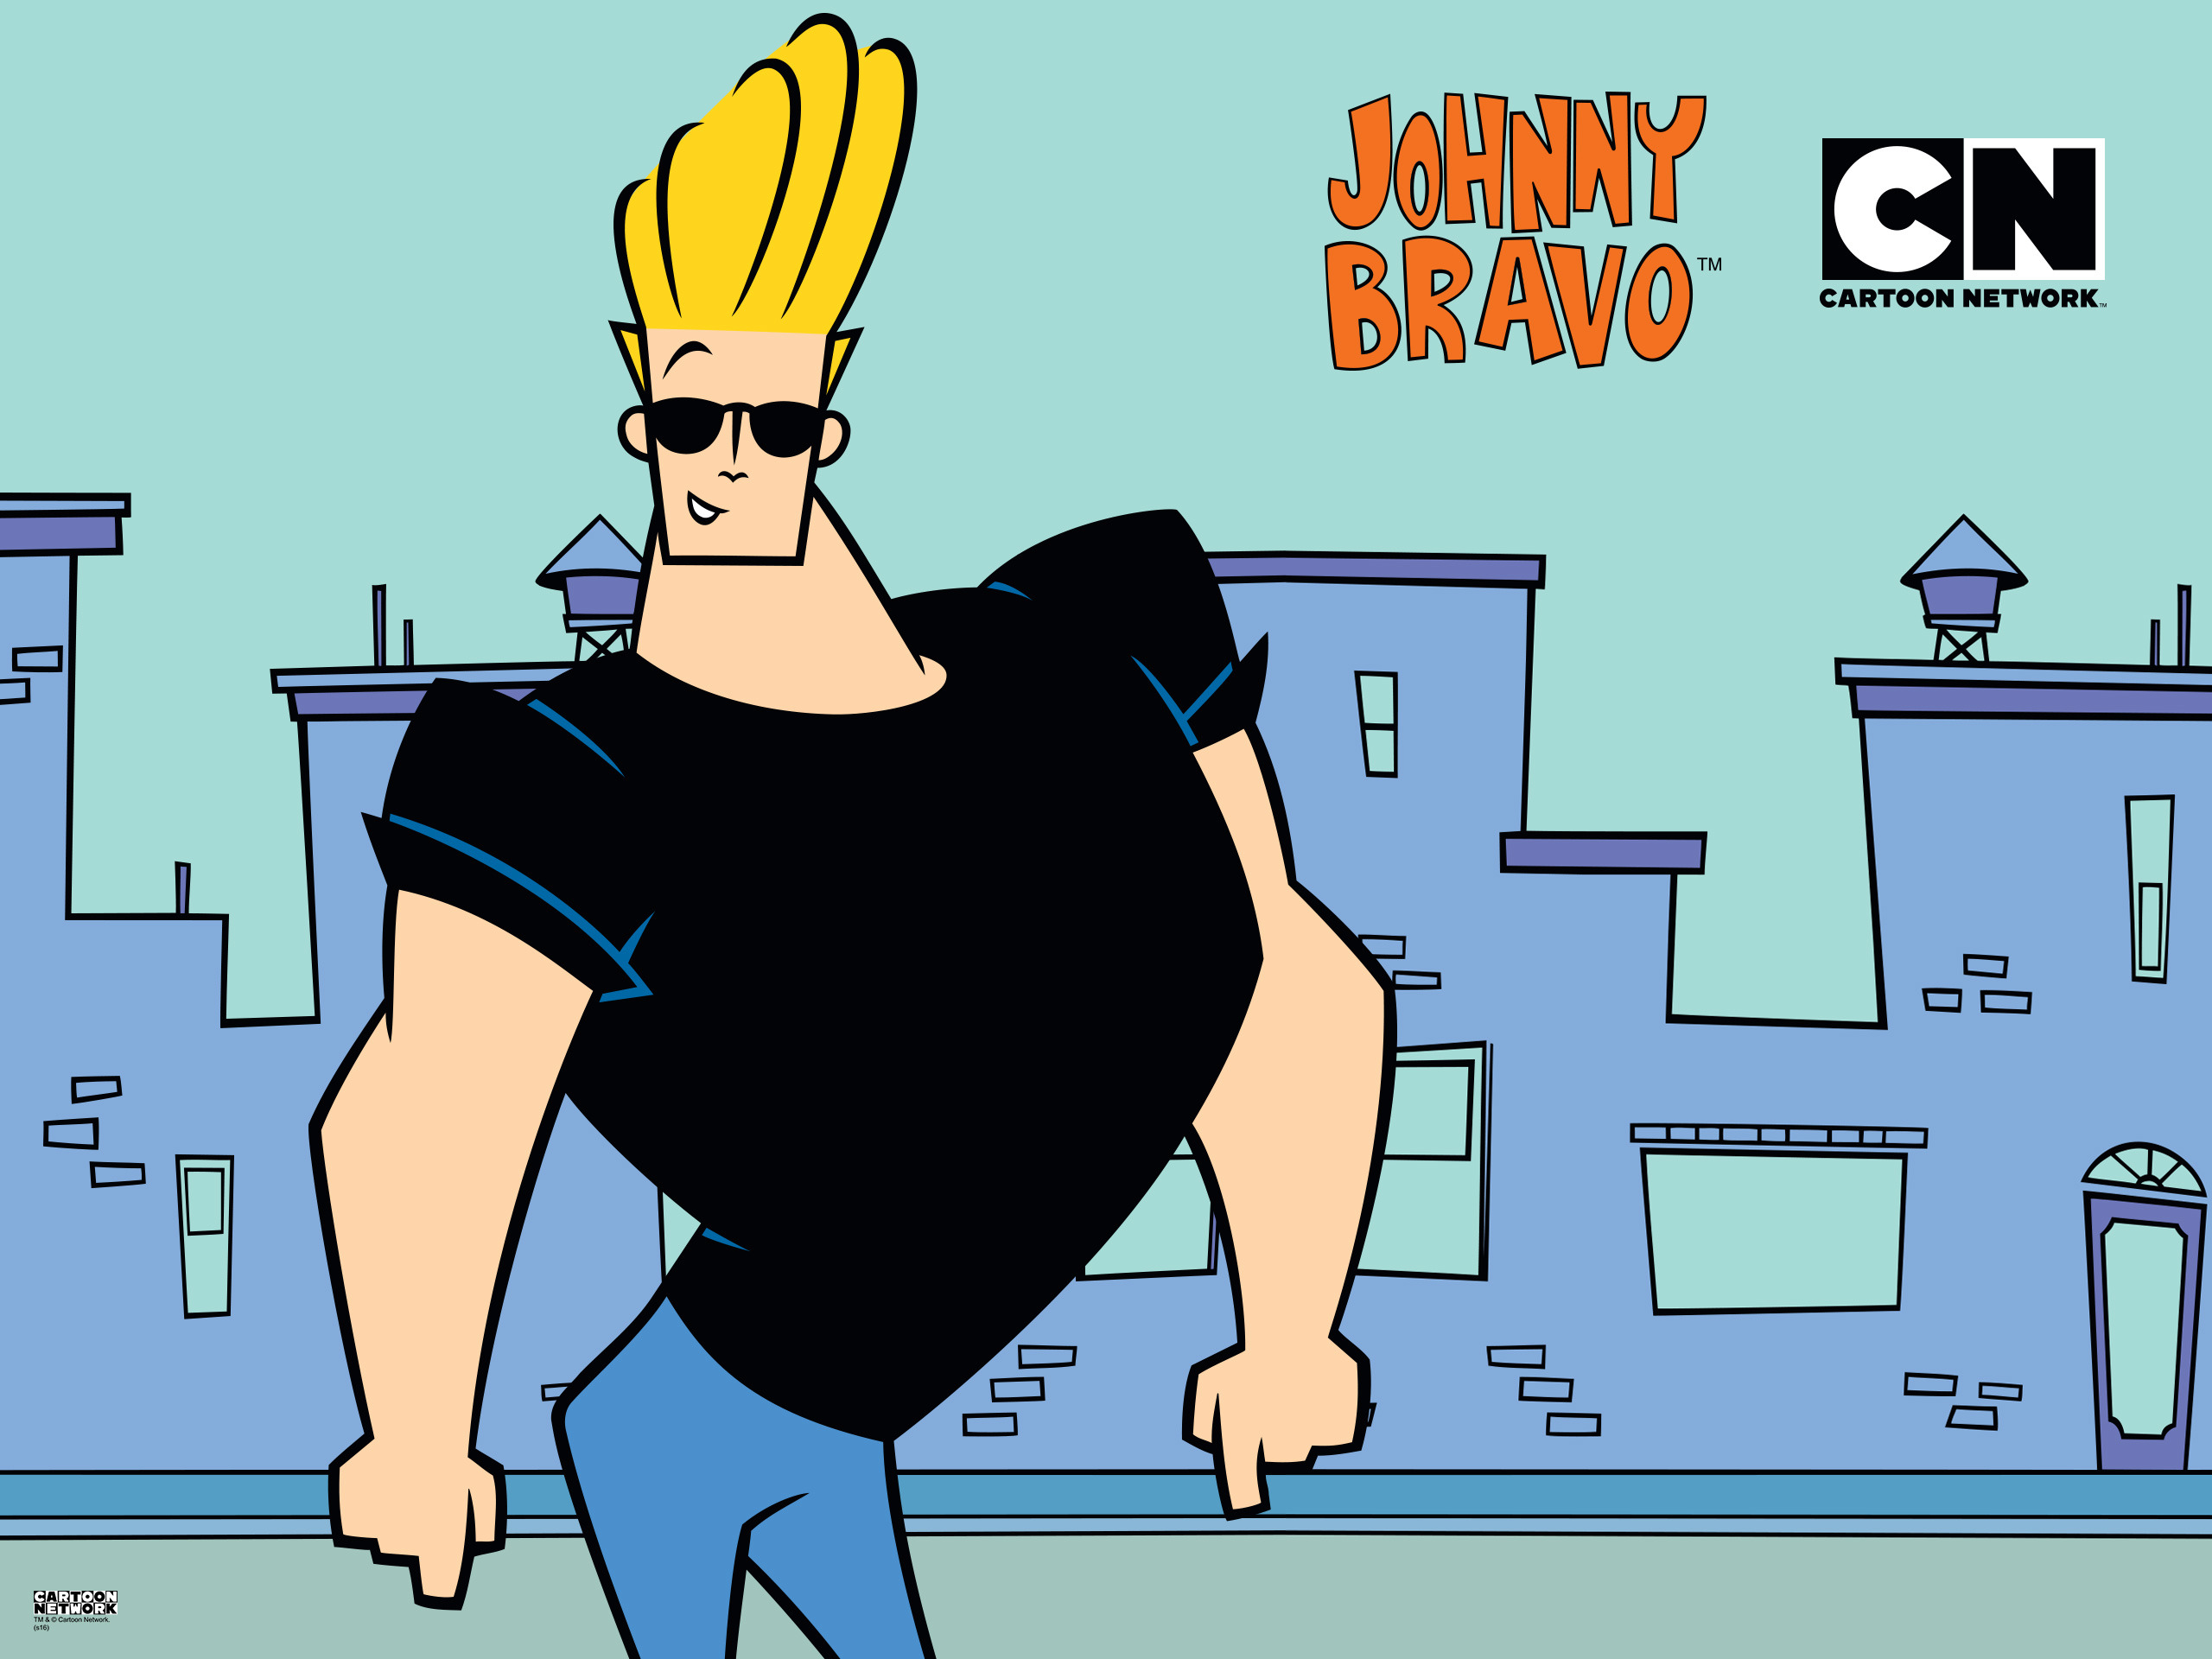 Prime Video: Johnny Bravo - Season 1